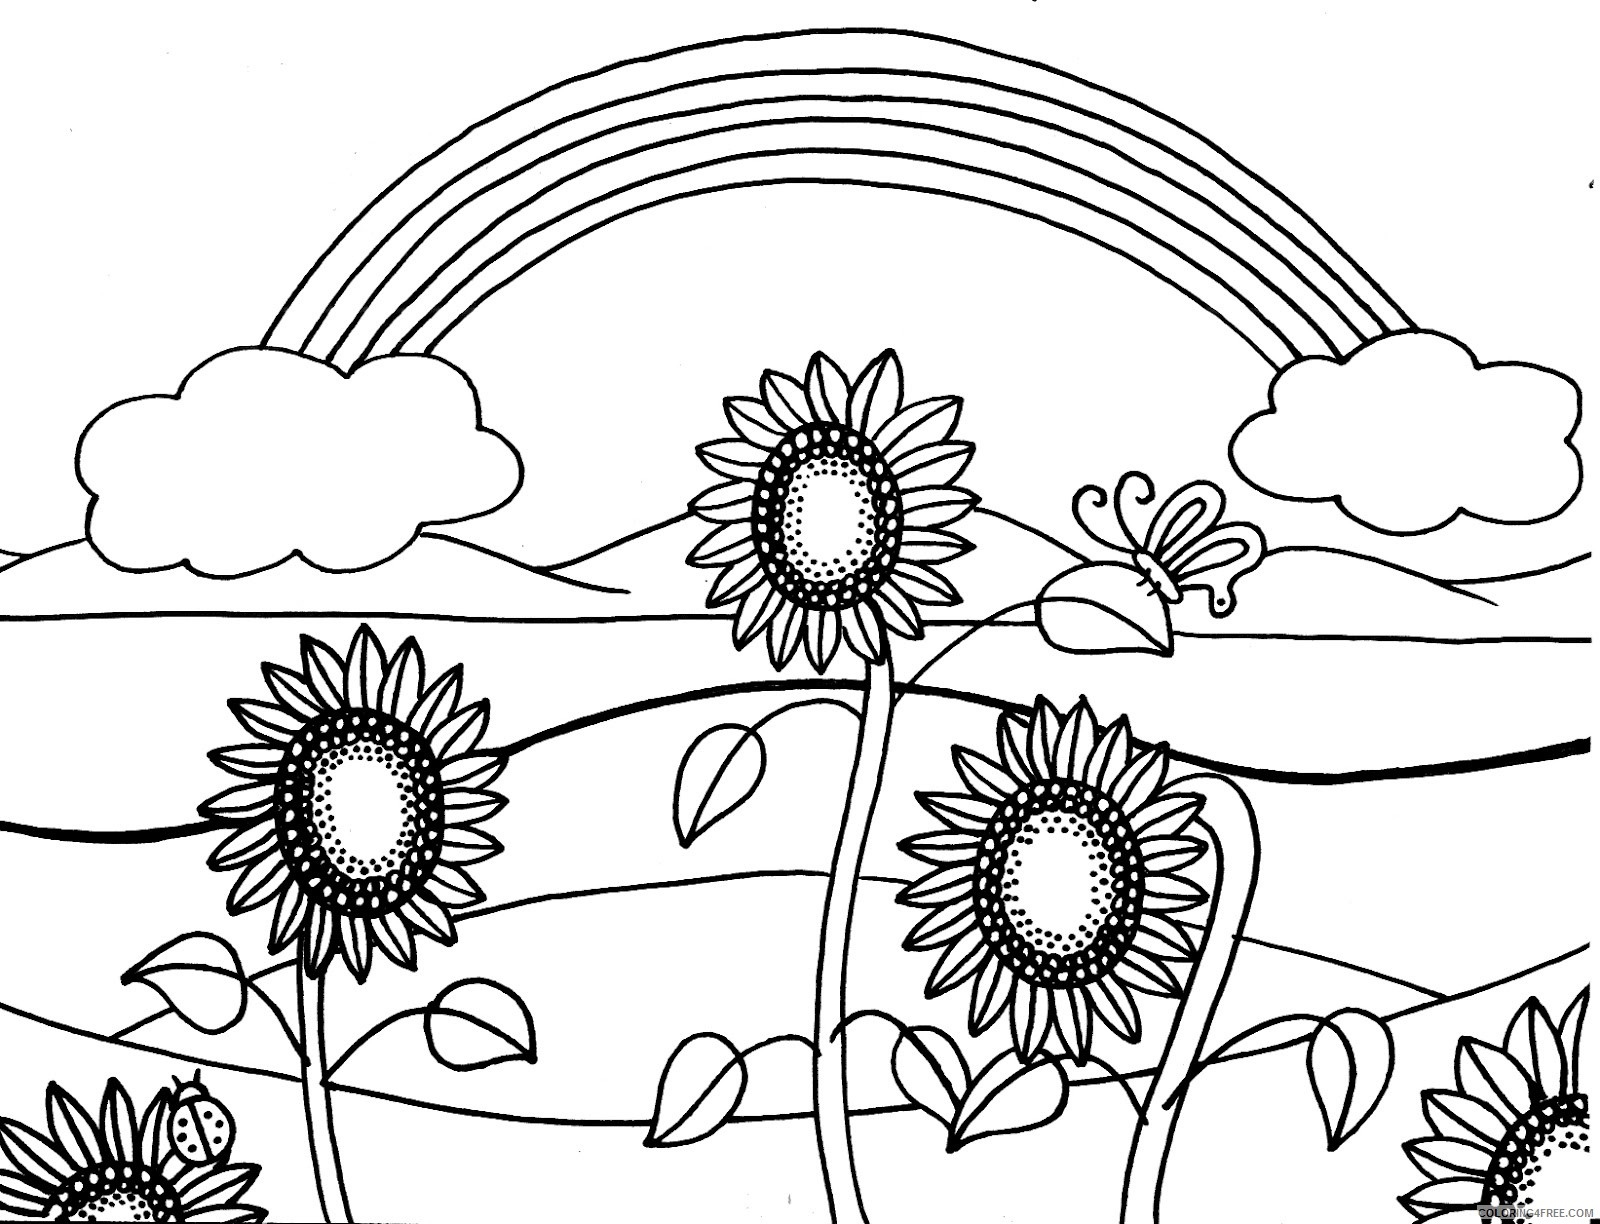 Sunflower Coloring Pages With Rainbow Coloring4free Coloring4free Com